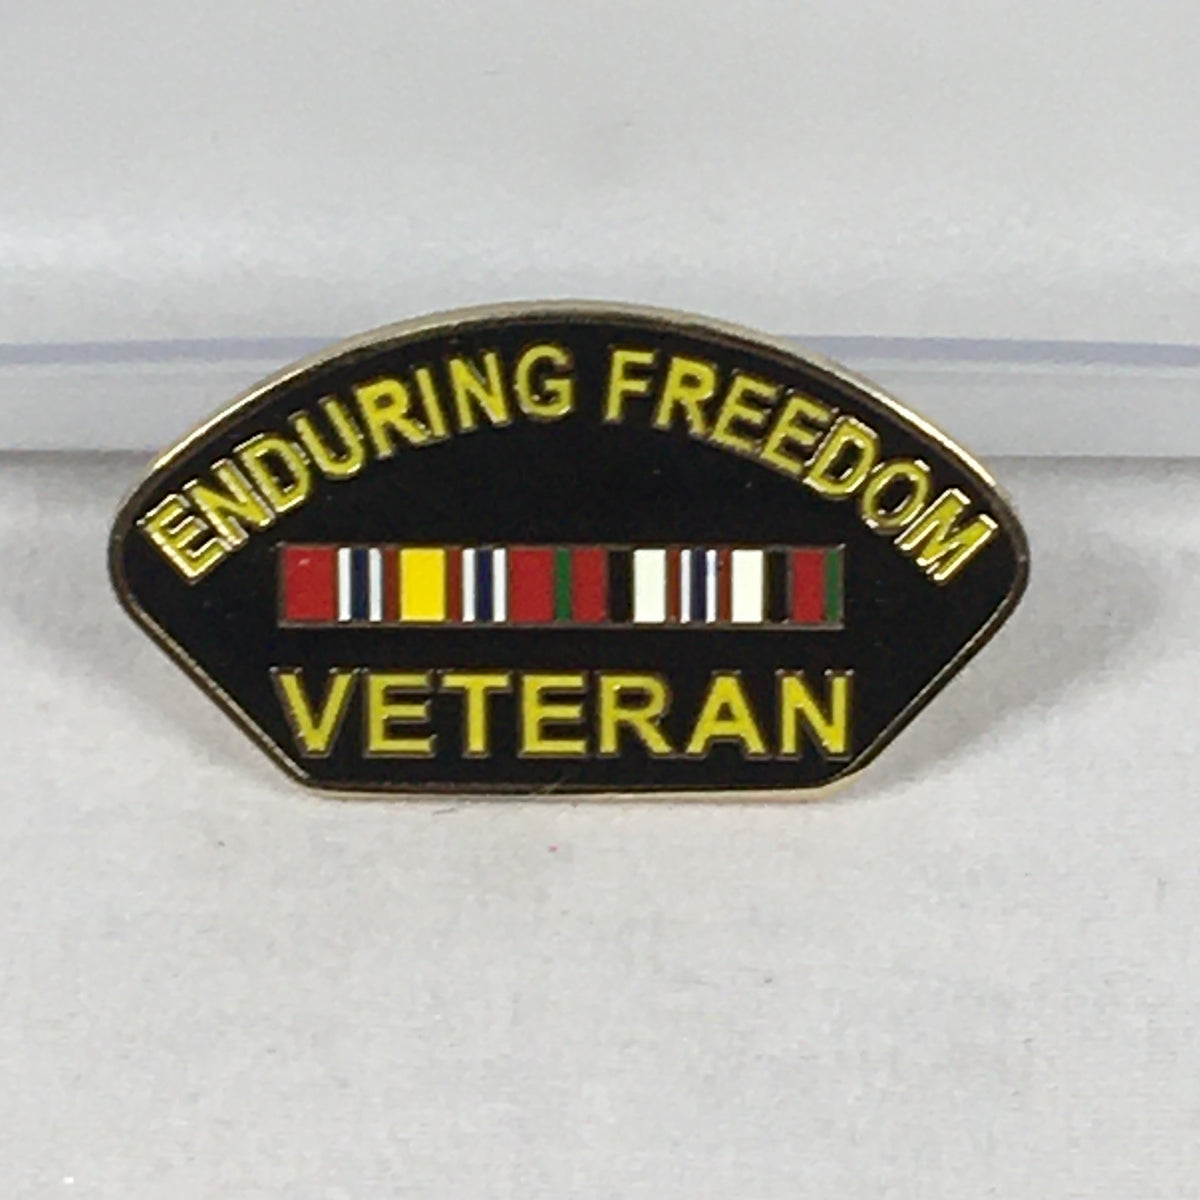 Enduring Freedom Veteran Pin